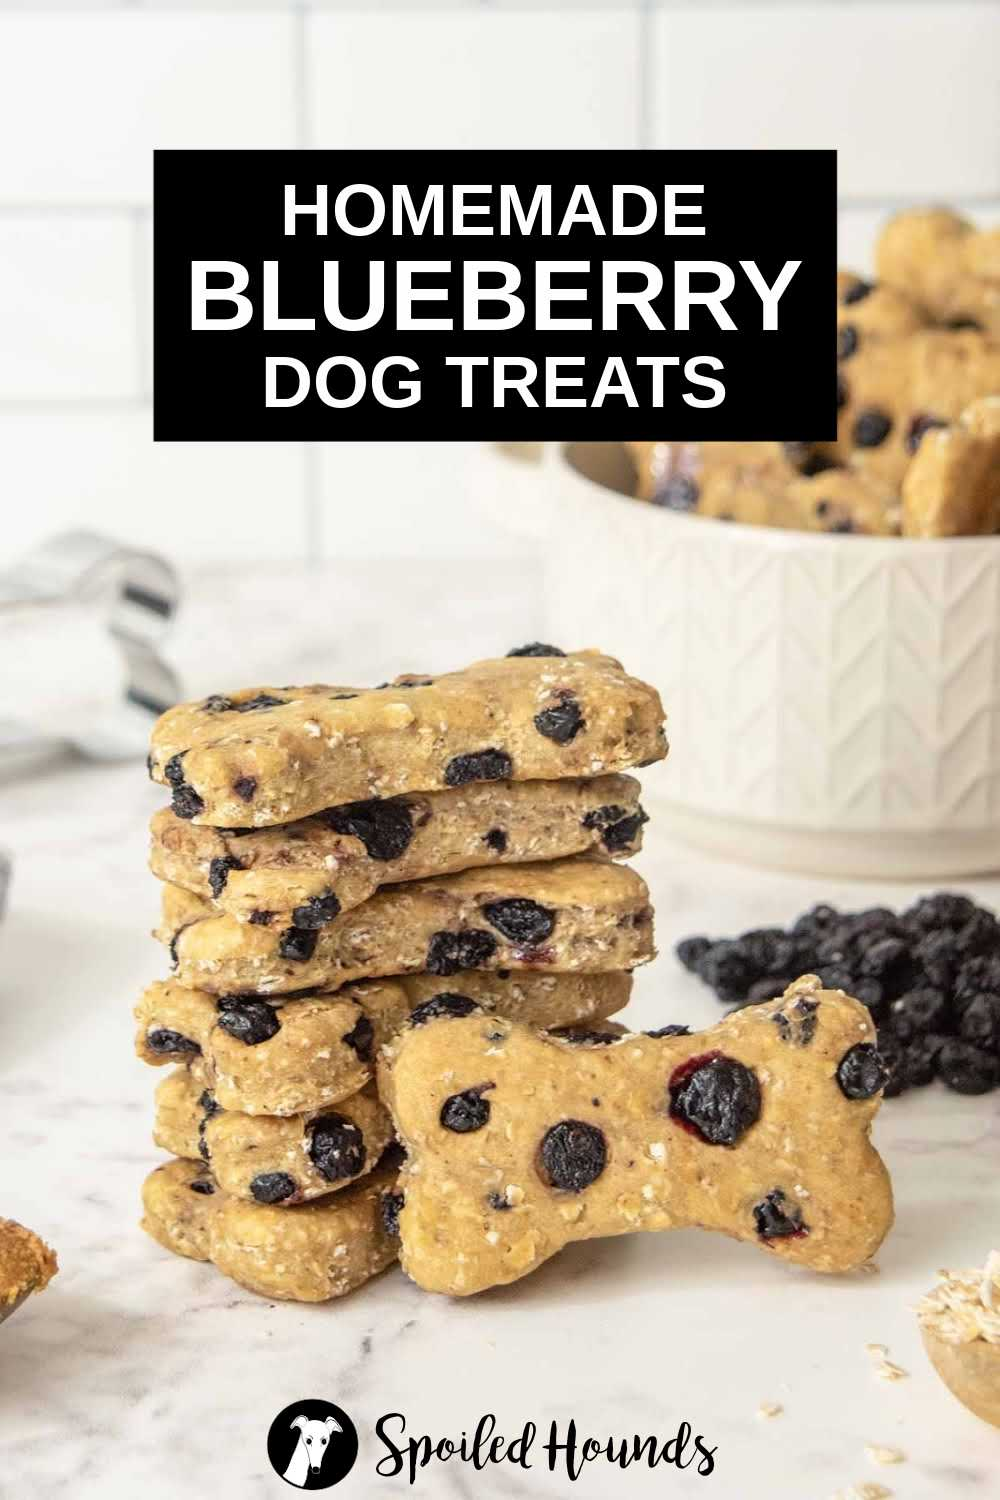 a stack of homemade blueberry dog treats